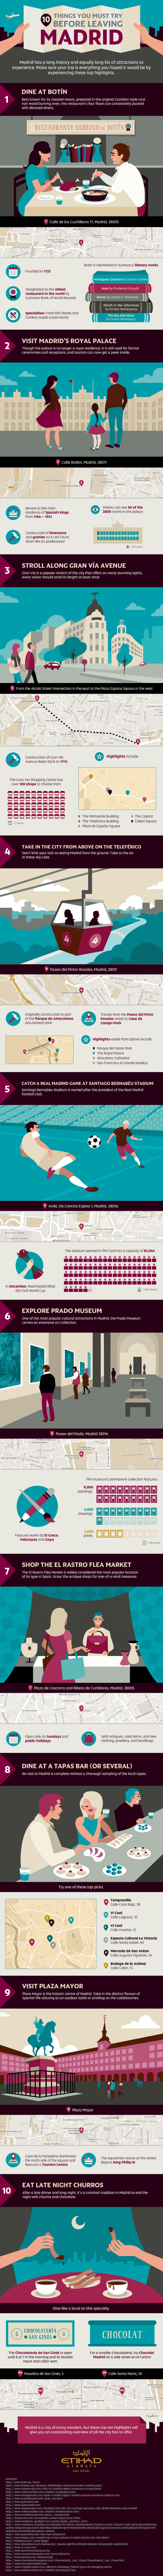 etihads-ten-things-to-try-before-leaving-madrid-infographic